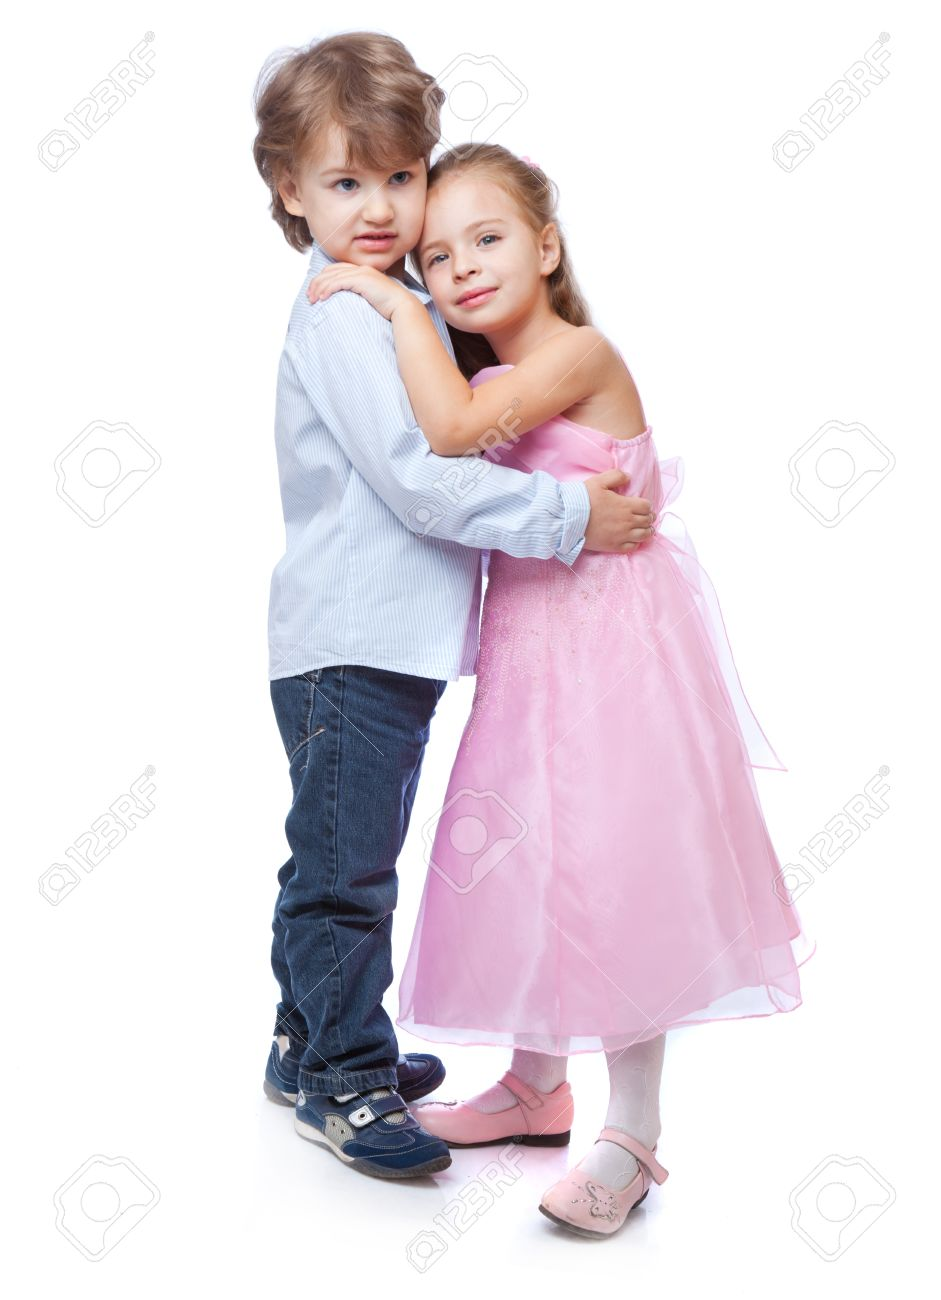 Little Boy And Girl In Love Isolated On White Background Stock